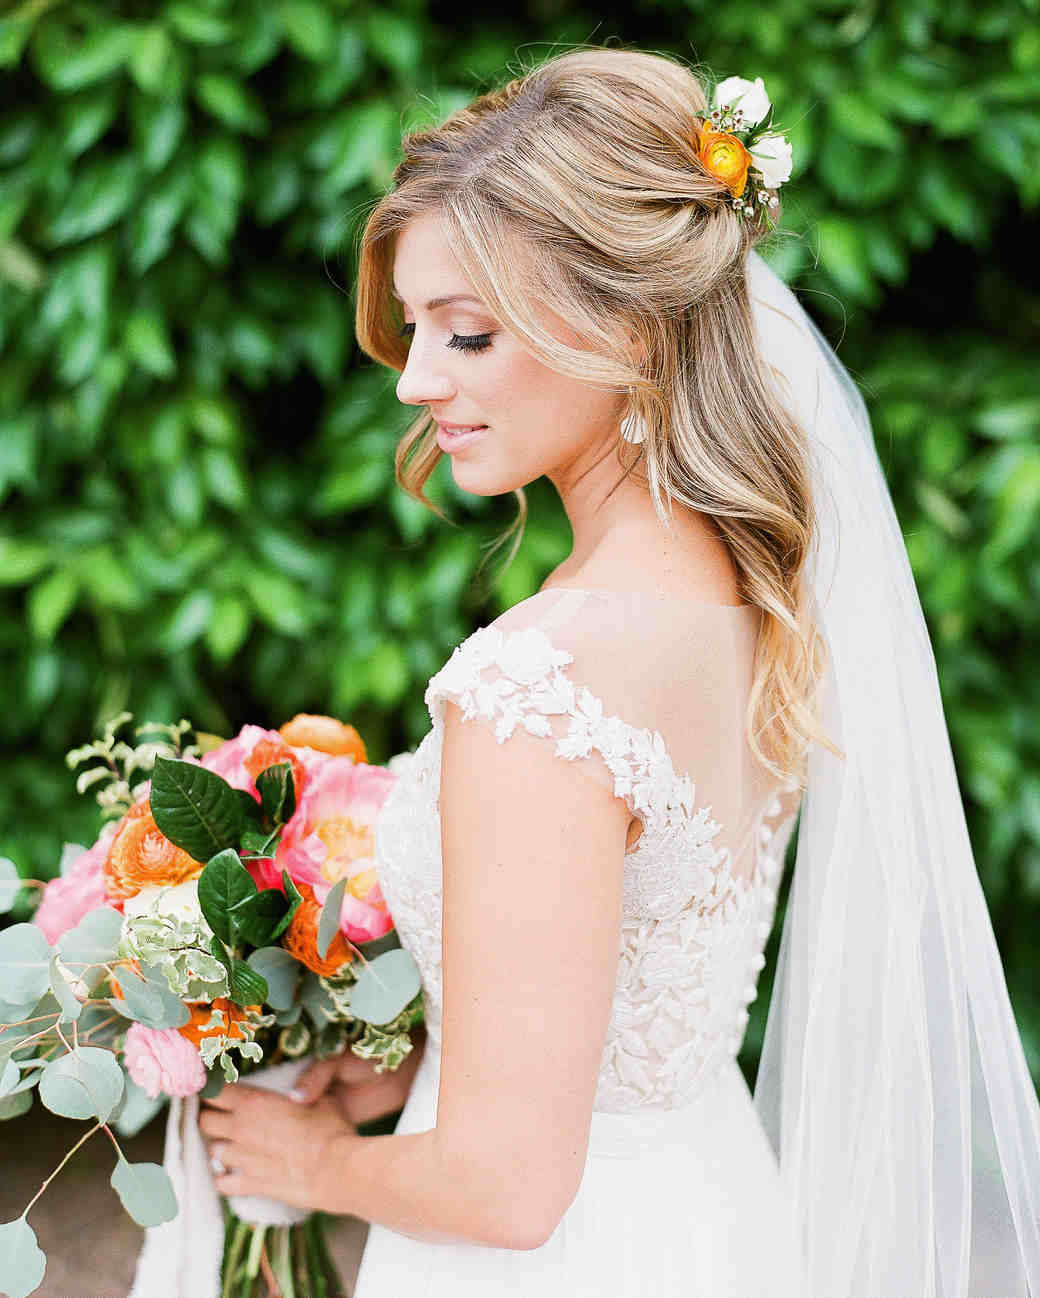 28 Prettiest Wedding Hairstyles: 28 Half-Up, Half-Down Wedding Hairstyles We Love